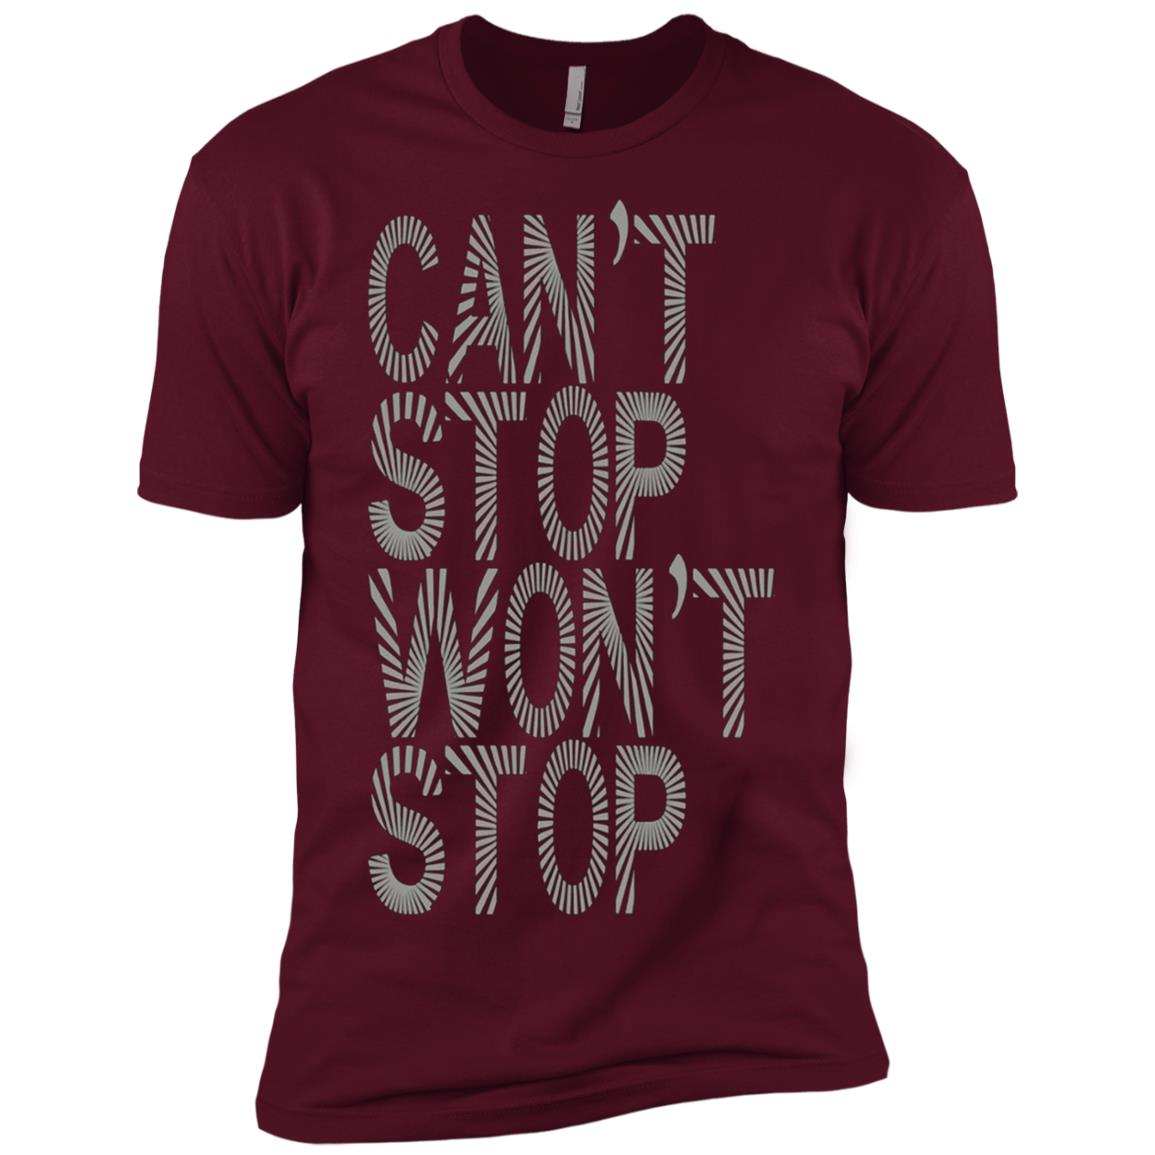 Womens Fitness – Can't Stop Won't Stop Men Short Sleeve T-Shirt